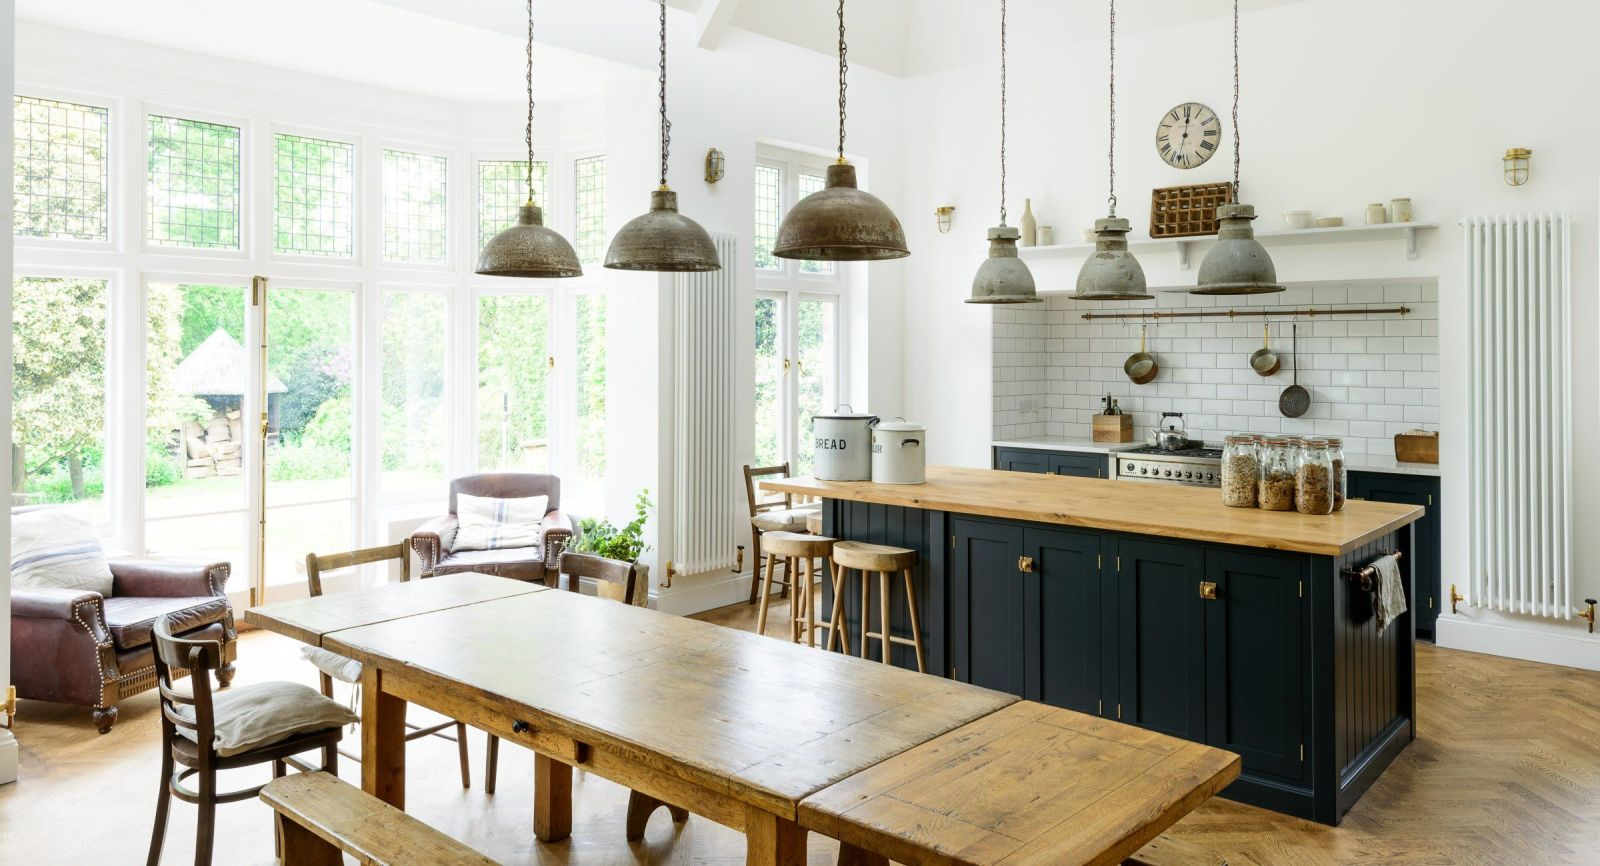 100+ kitchen design ideas - pictures of country kitchen decorating